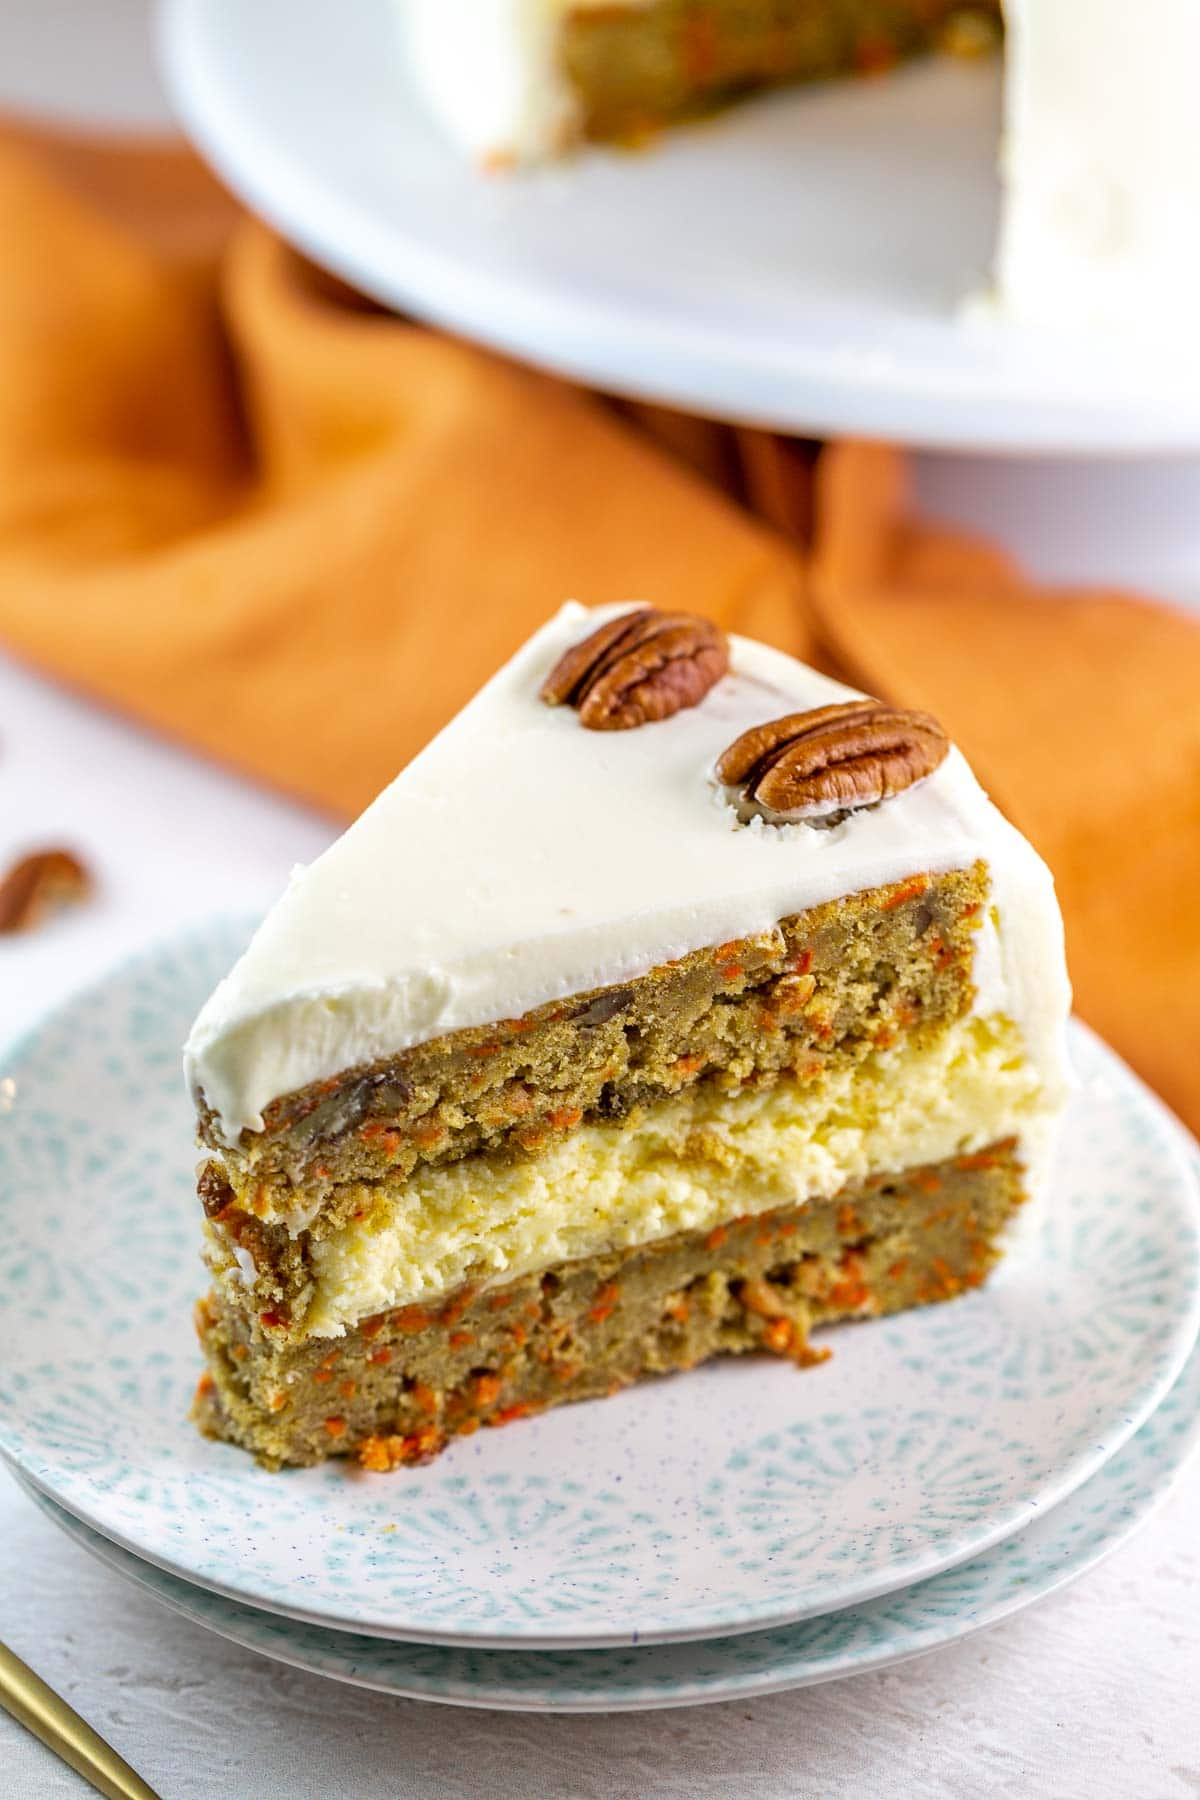 slice of cake with two slices of carrot cake and a layer of cheesecake in the middle